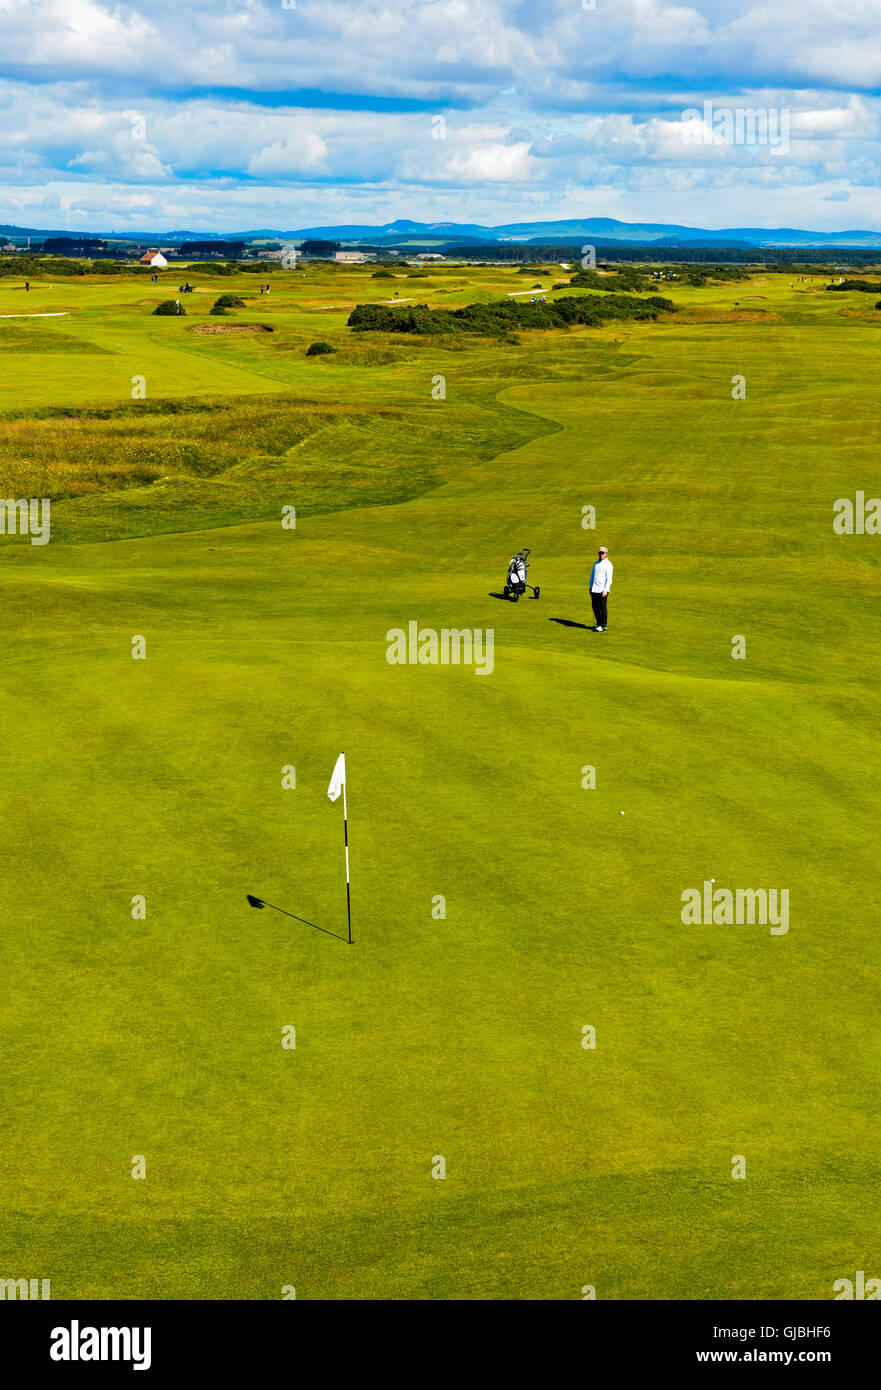 Two golf players on the putting green on a golf course, Golf course St Andrews Links, St Andrews, Fife, Scotland, - Stock Image